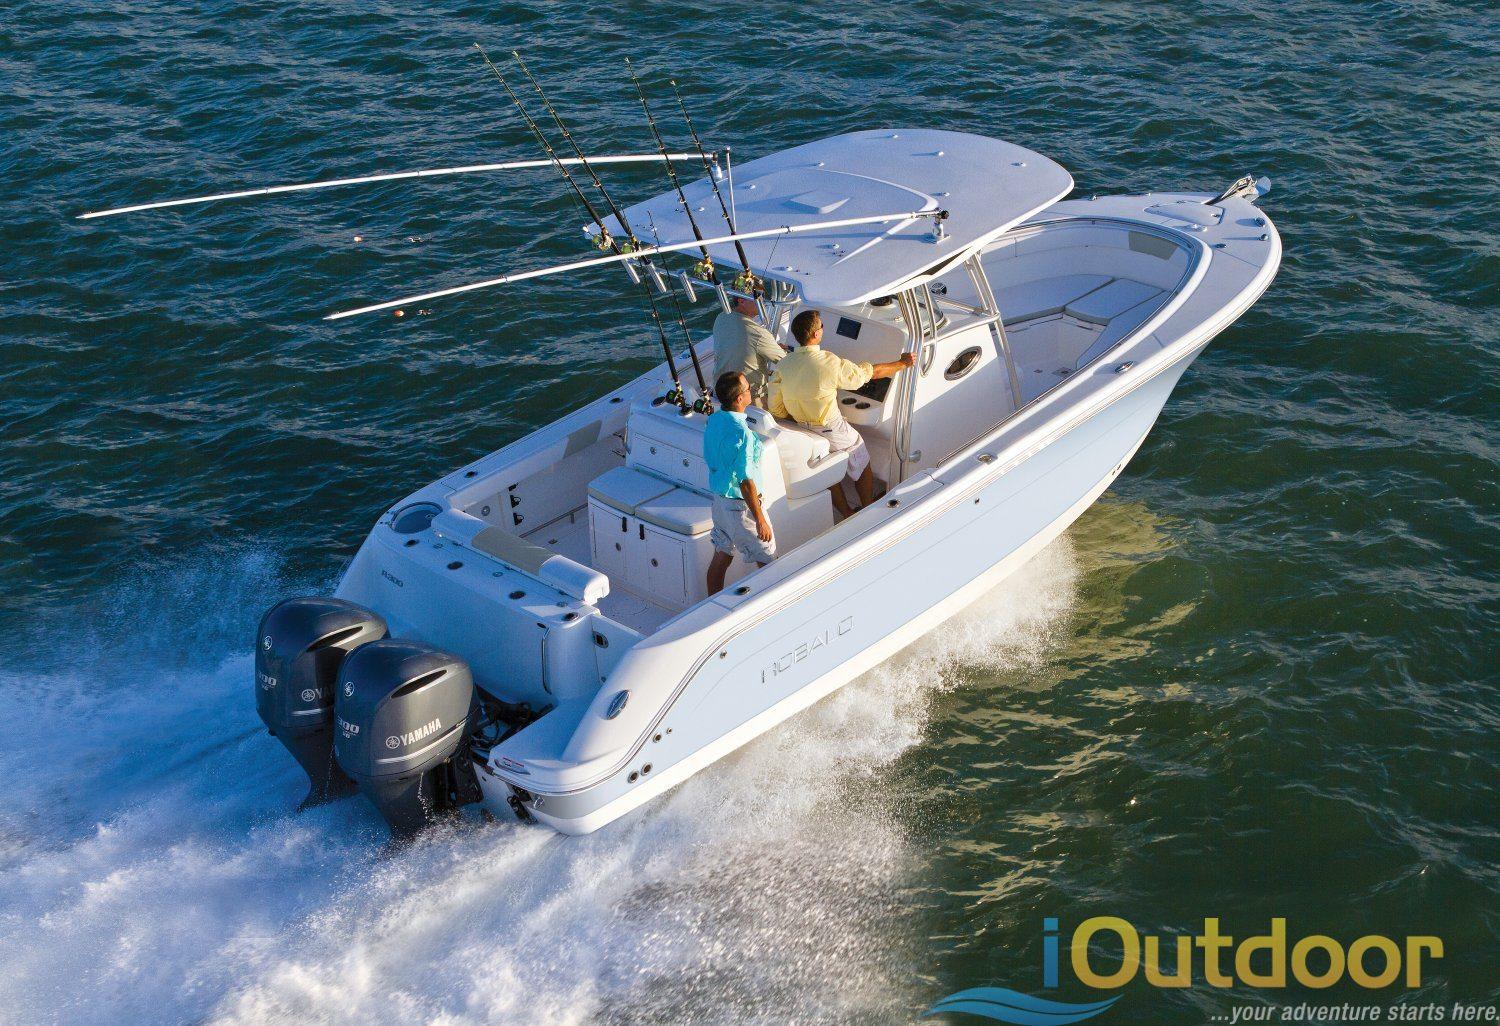 Boat charters ft lauderdale fl ioutdoor fishing adventures for Deep sea fishing west palm beach